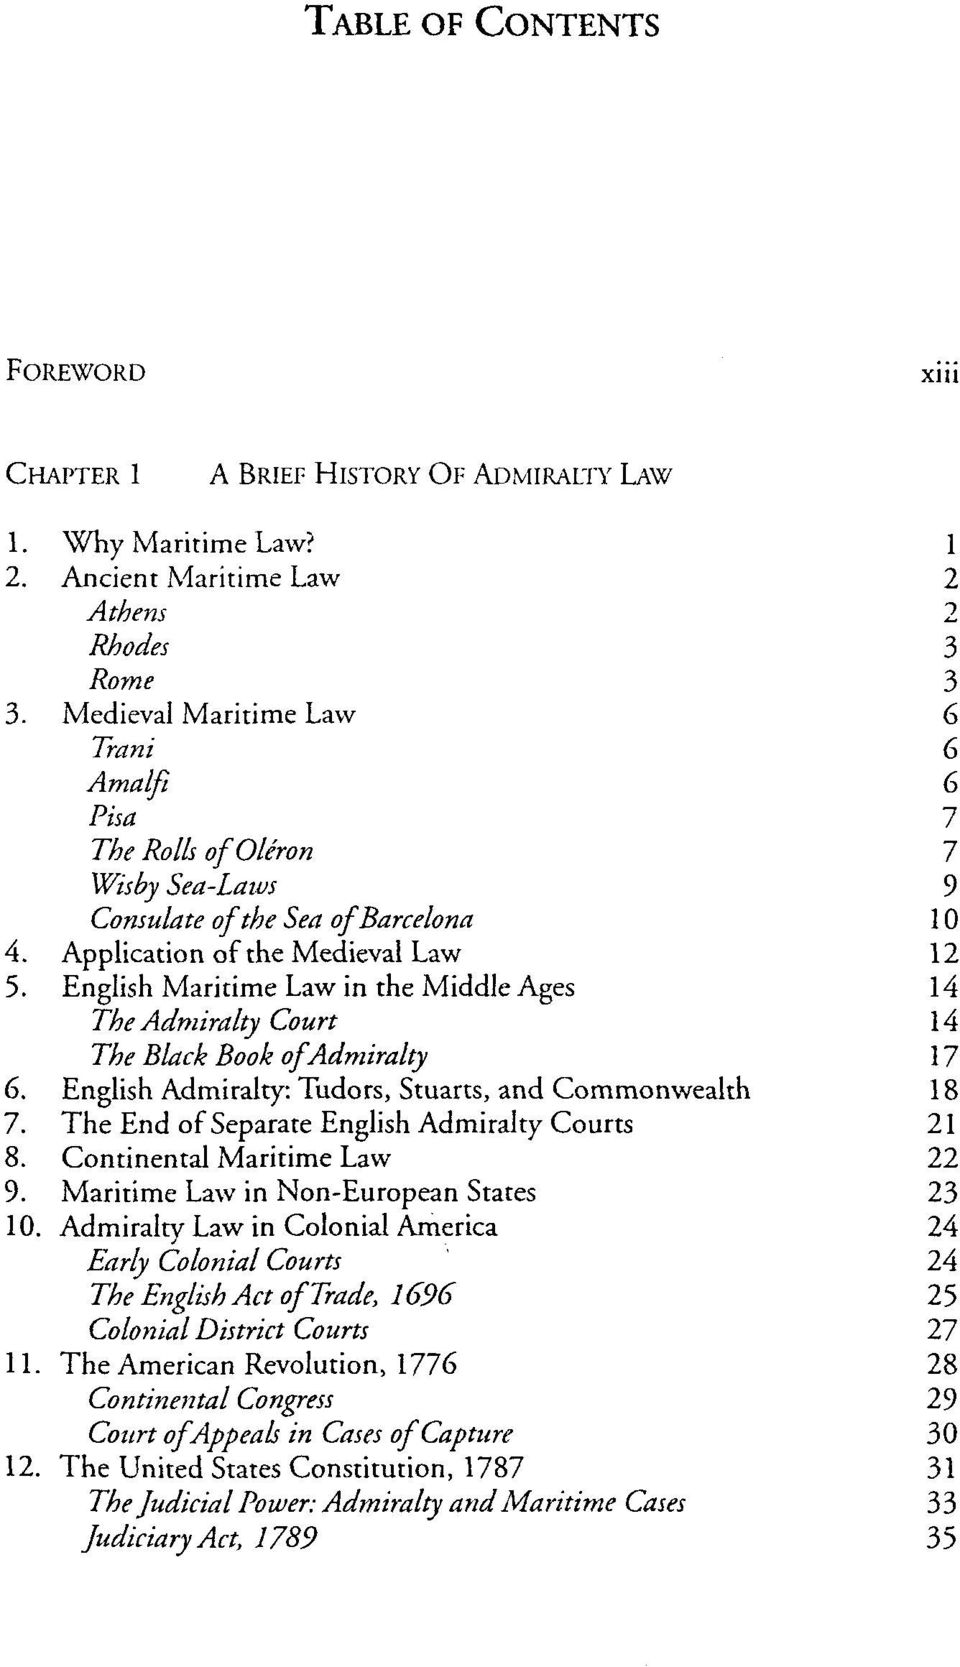 English Maritime Law in the Middle Ages 14 The Admiralty Court 14 The Black Book of Admiralty 17 6. English Admiralty: Tudors, Stuarts, and Commonwealth 18 7.